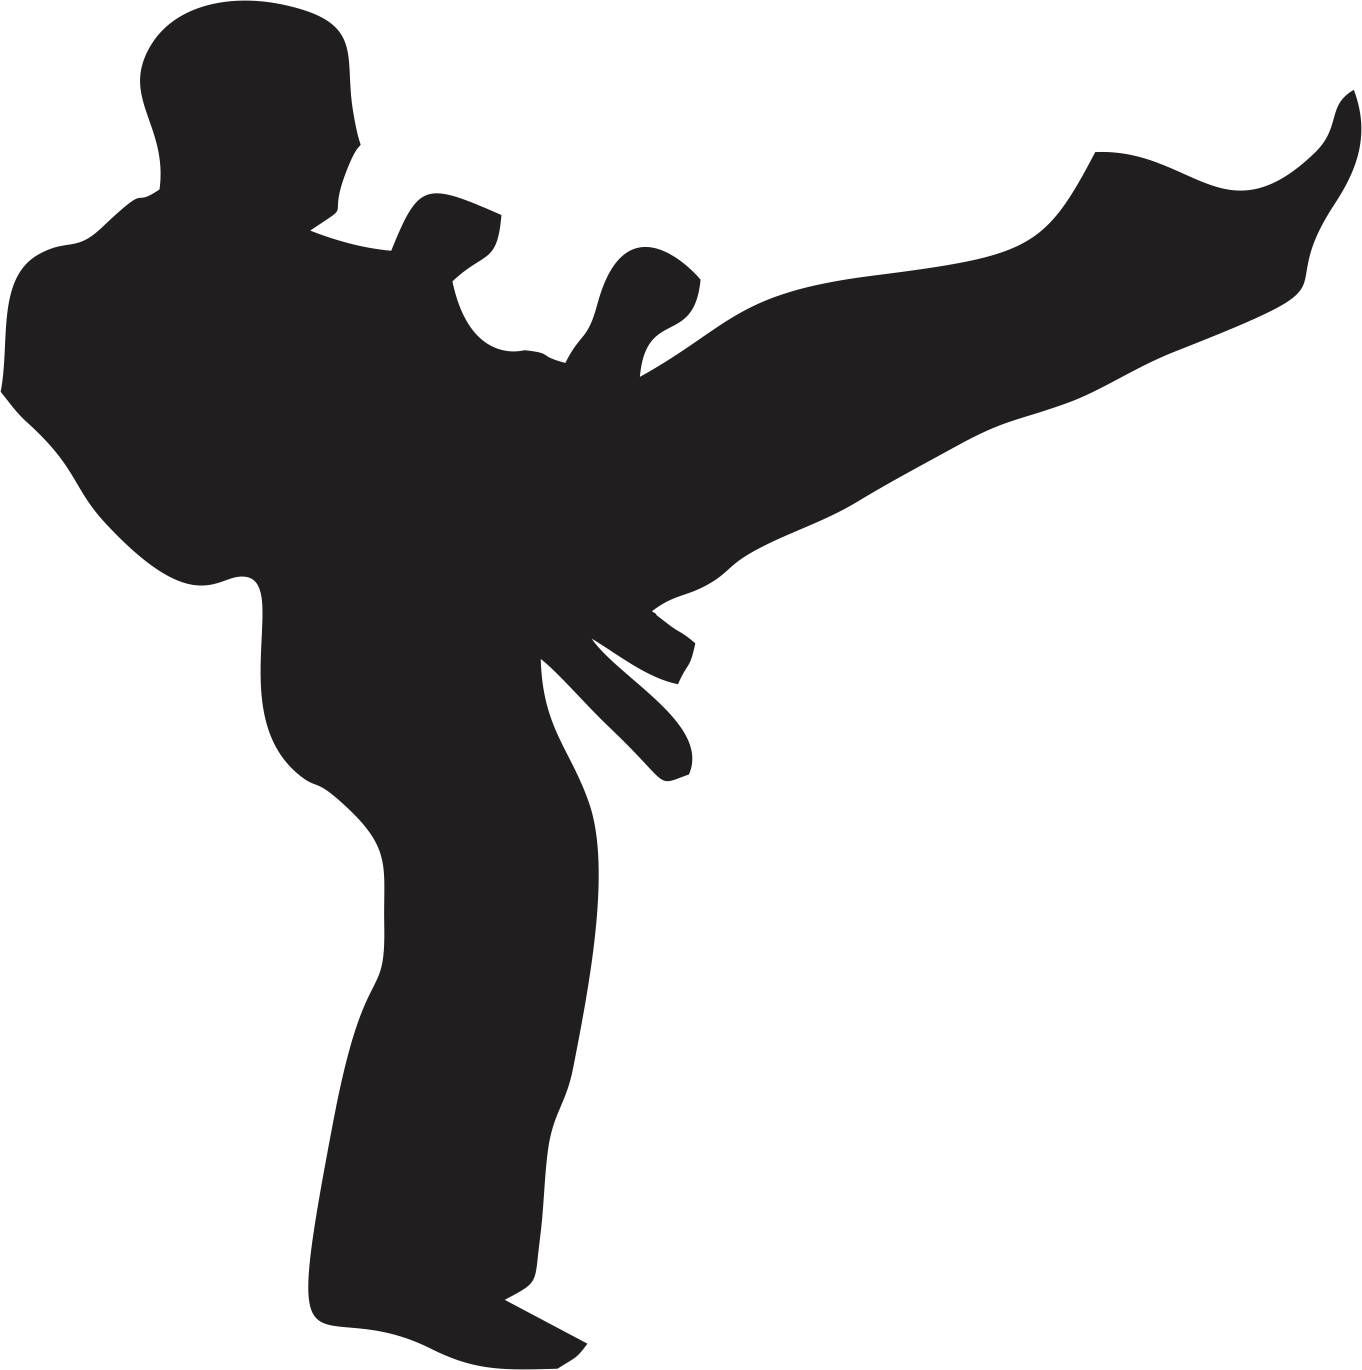 jpg freeuse download Karate clipart person. Man clip art free.